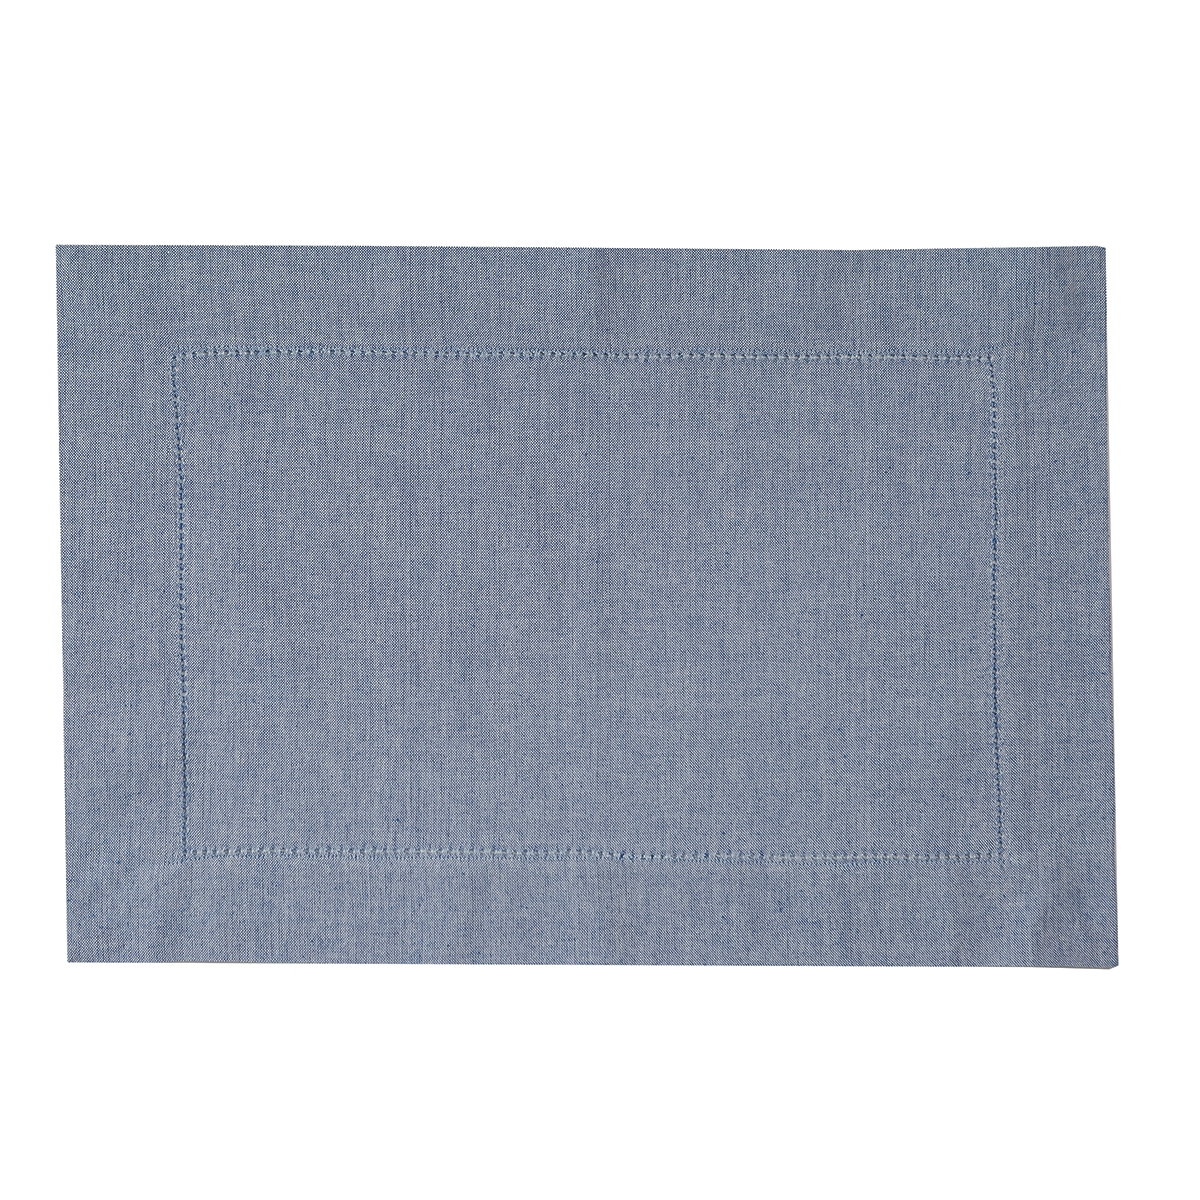 Blue Hemstitch Placemat